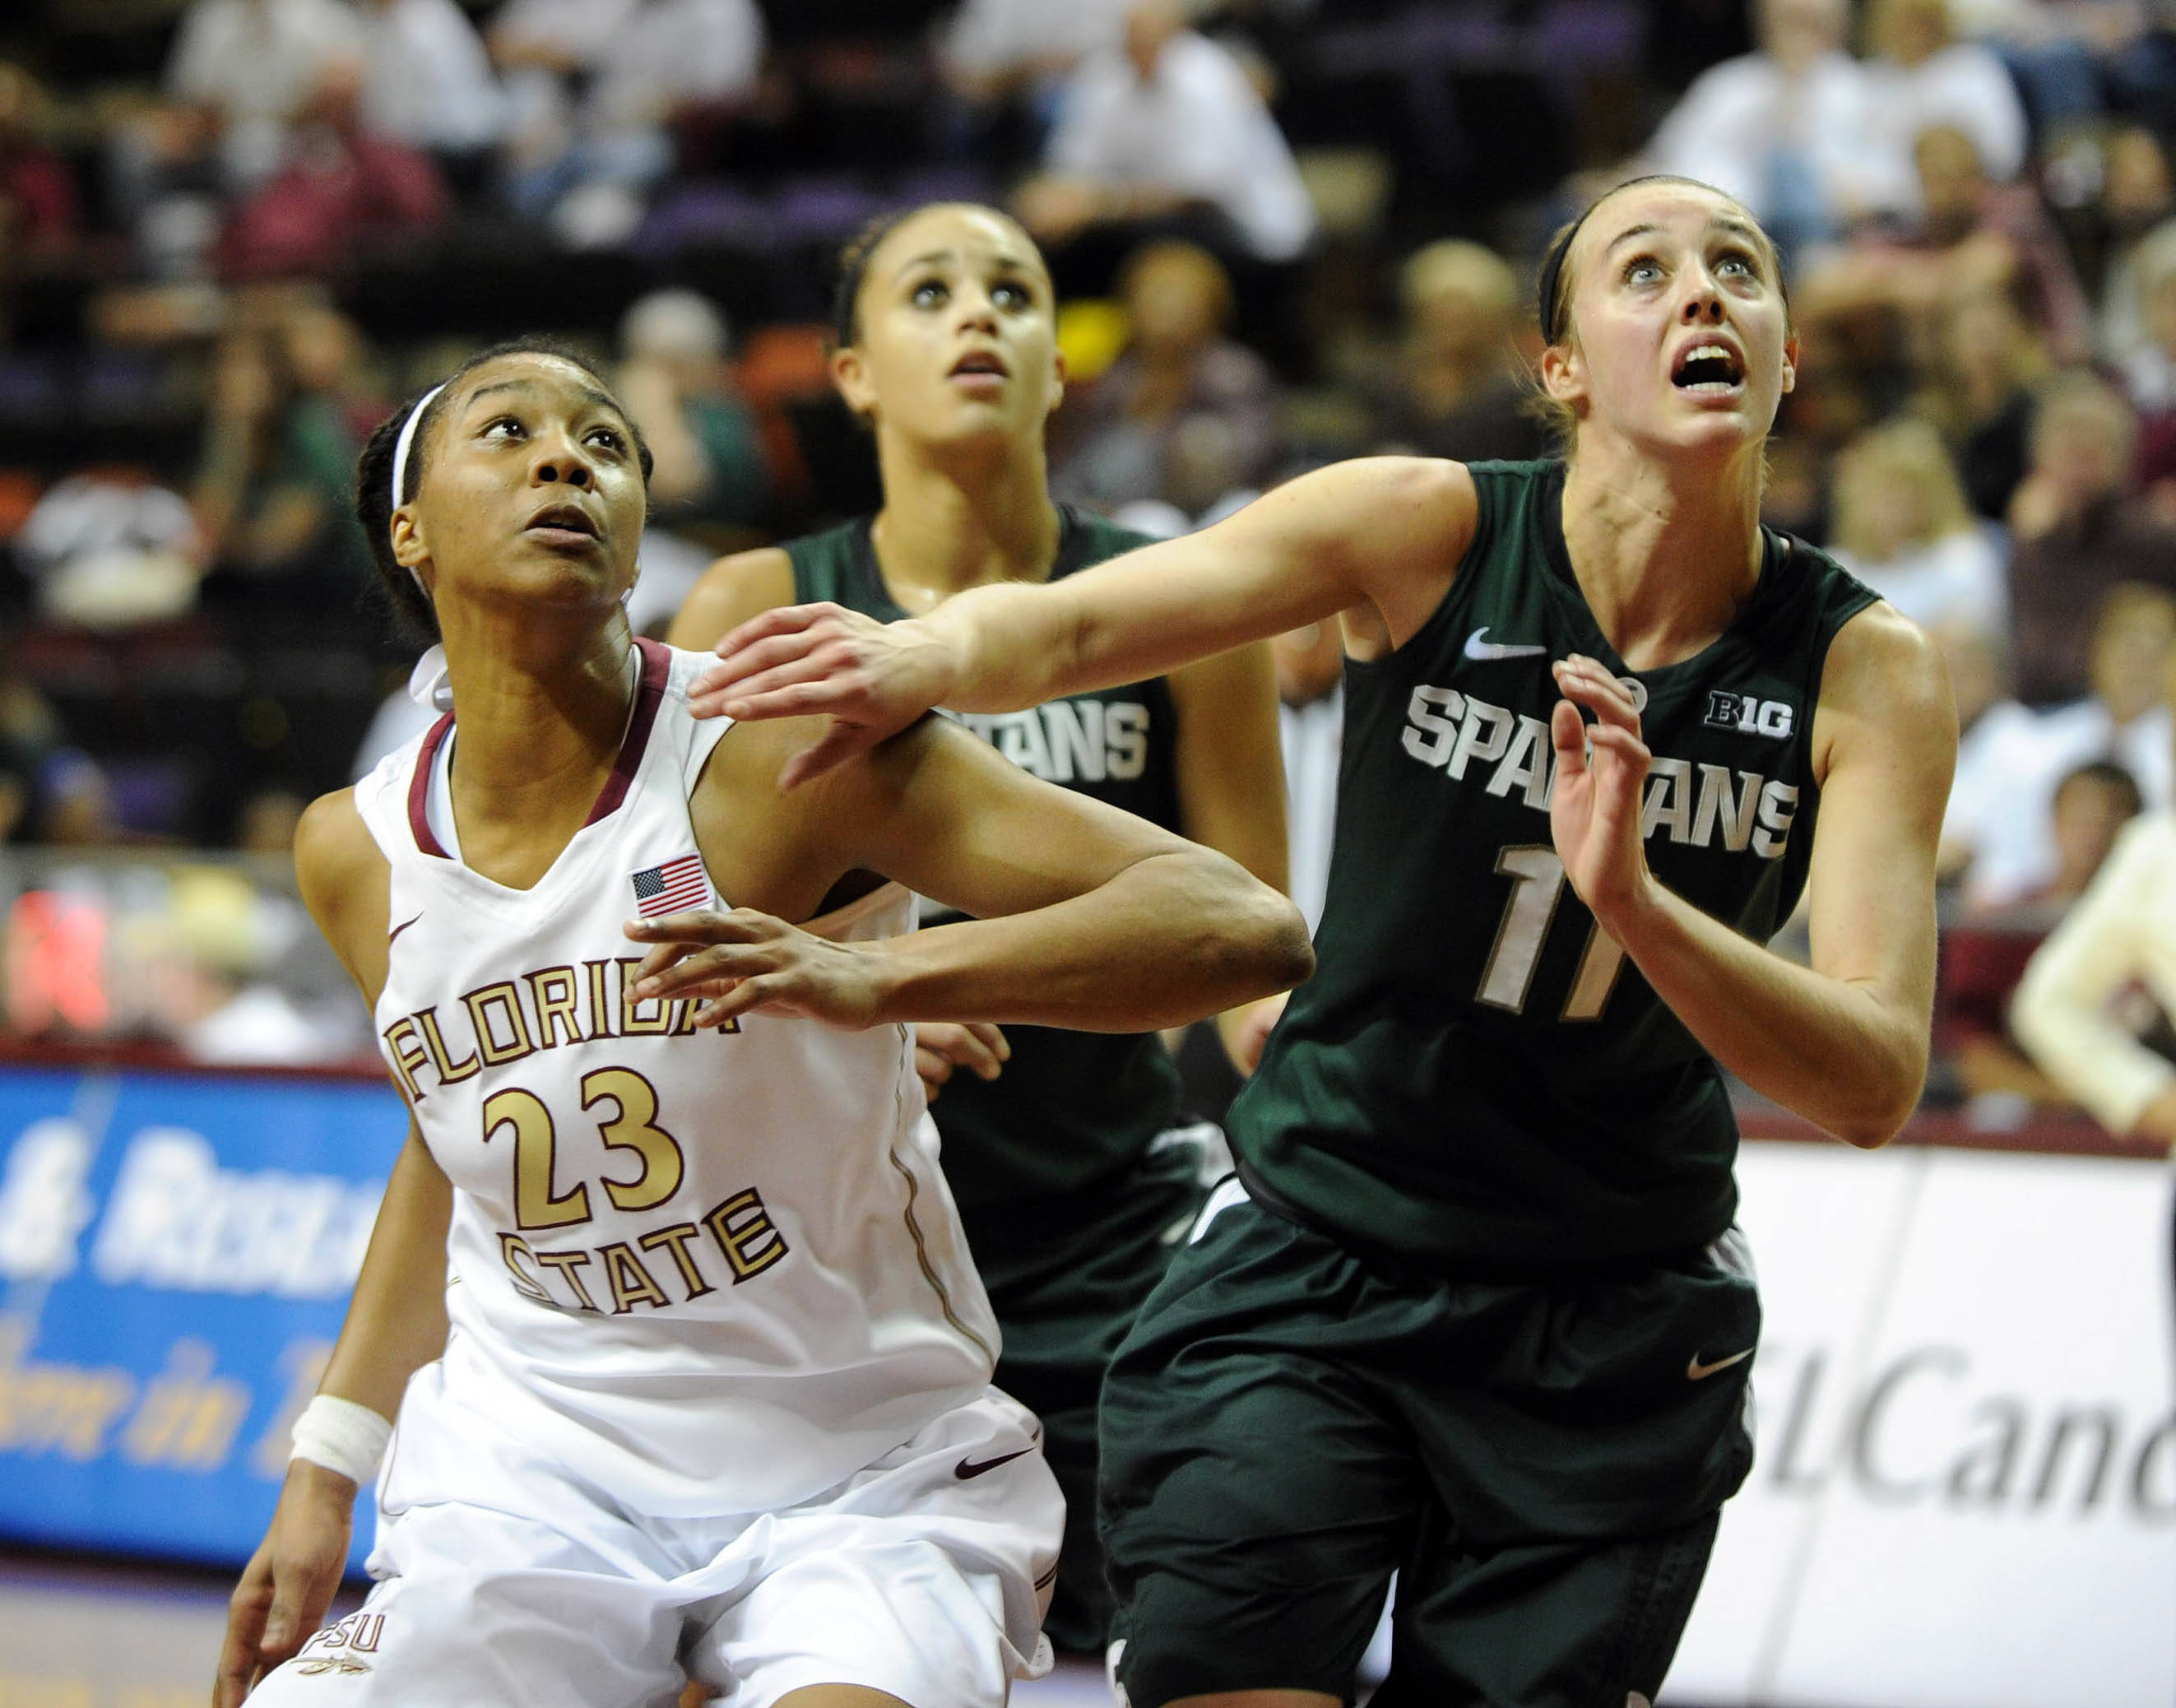 Dec 4, 2013; Tallahassee, FL, USA; Michigan State forward Annalise Pickrel (11) rights for position against Florida State Seminoles forward Ivey Slaughter (23) during the game at the Donald L. Tucker Center (Tallahassee). Mandatory Credit: Melina Vastola-USA TODAY Sports